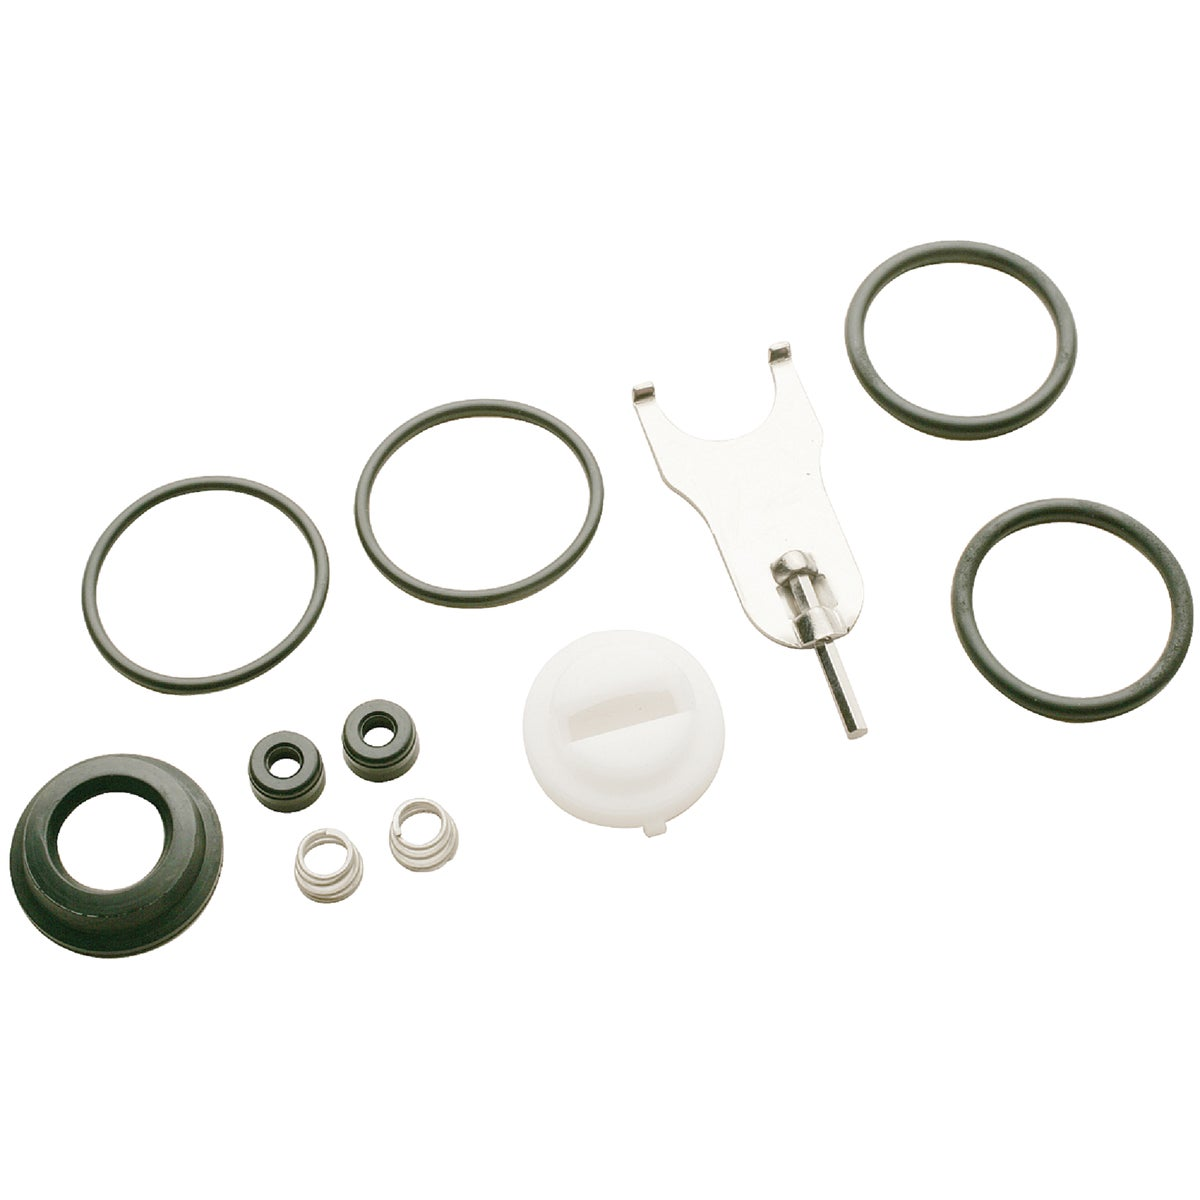 PEERLESS FCT REPAIR KIT - 405361 by Plumb Pak/keeney Mfg